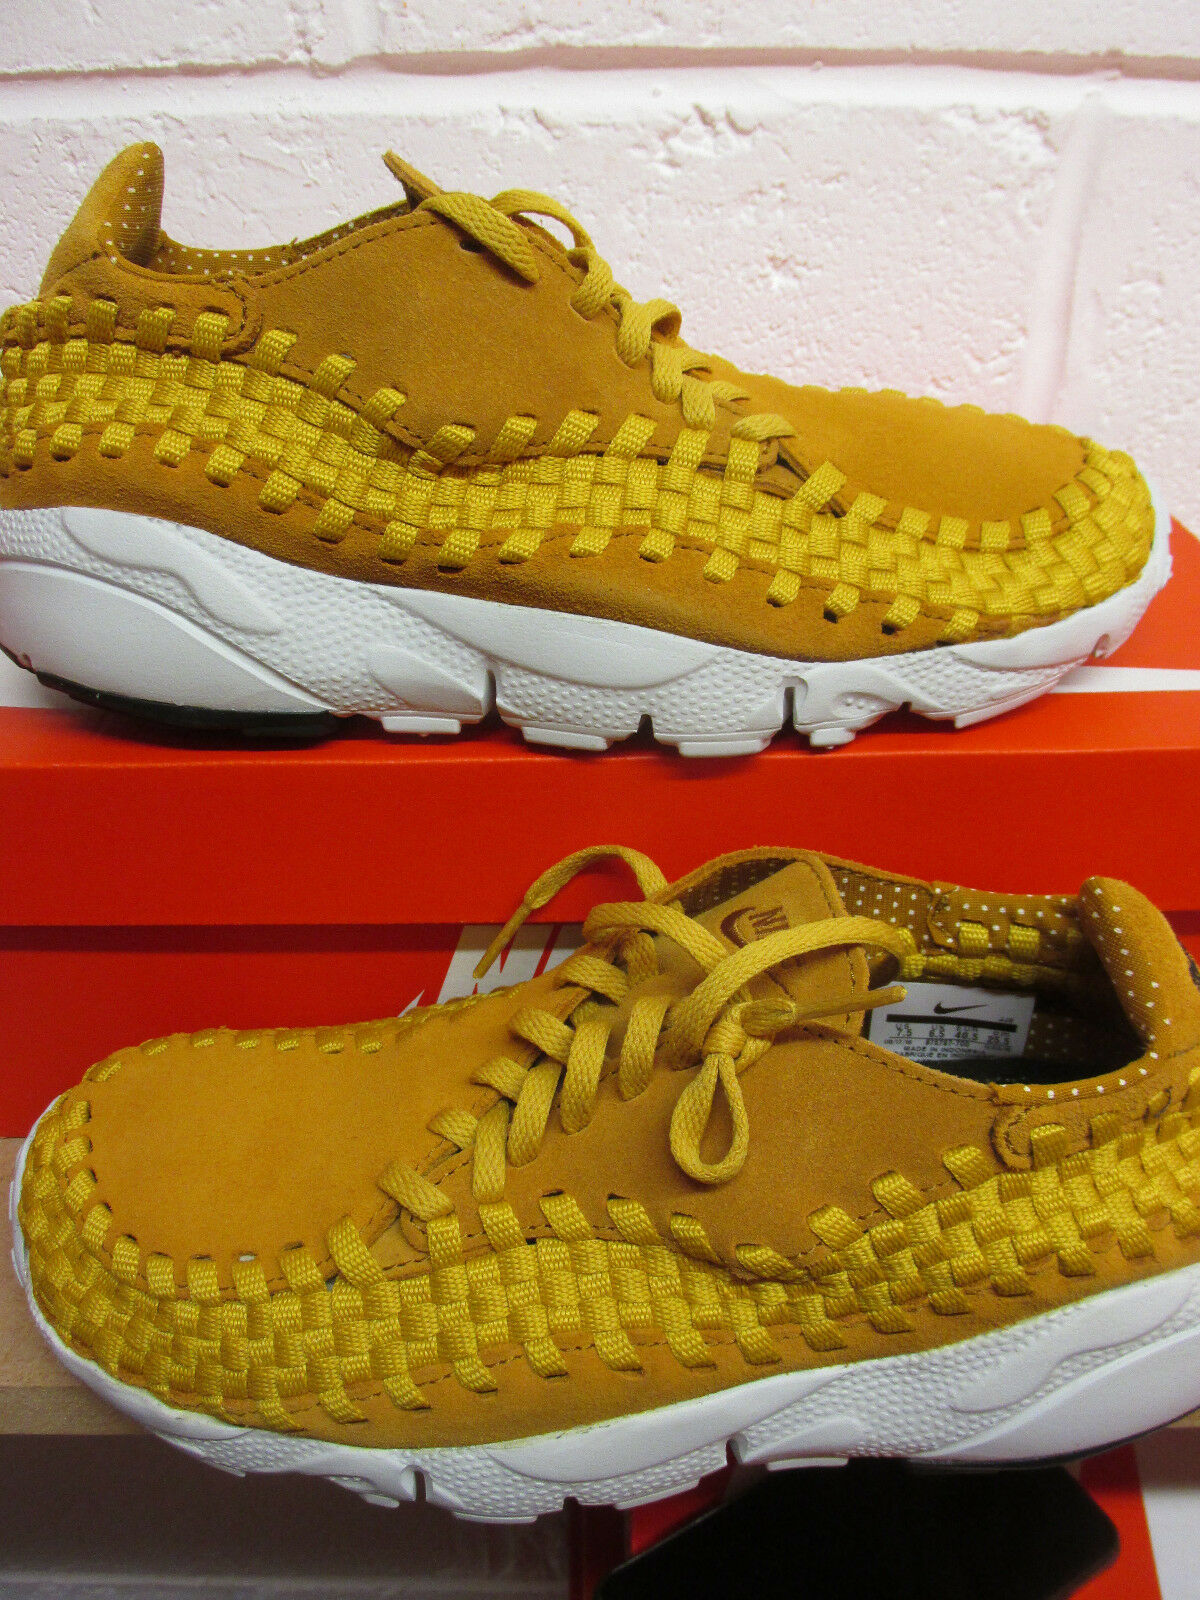 Nike Air Footscape Woven NM Mens Running Trainers 875797 700 Sneakers Shoes